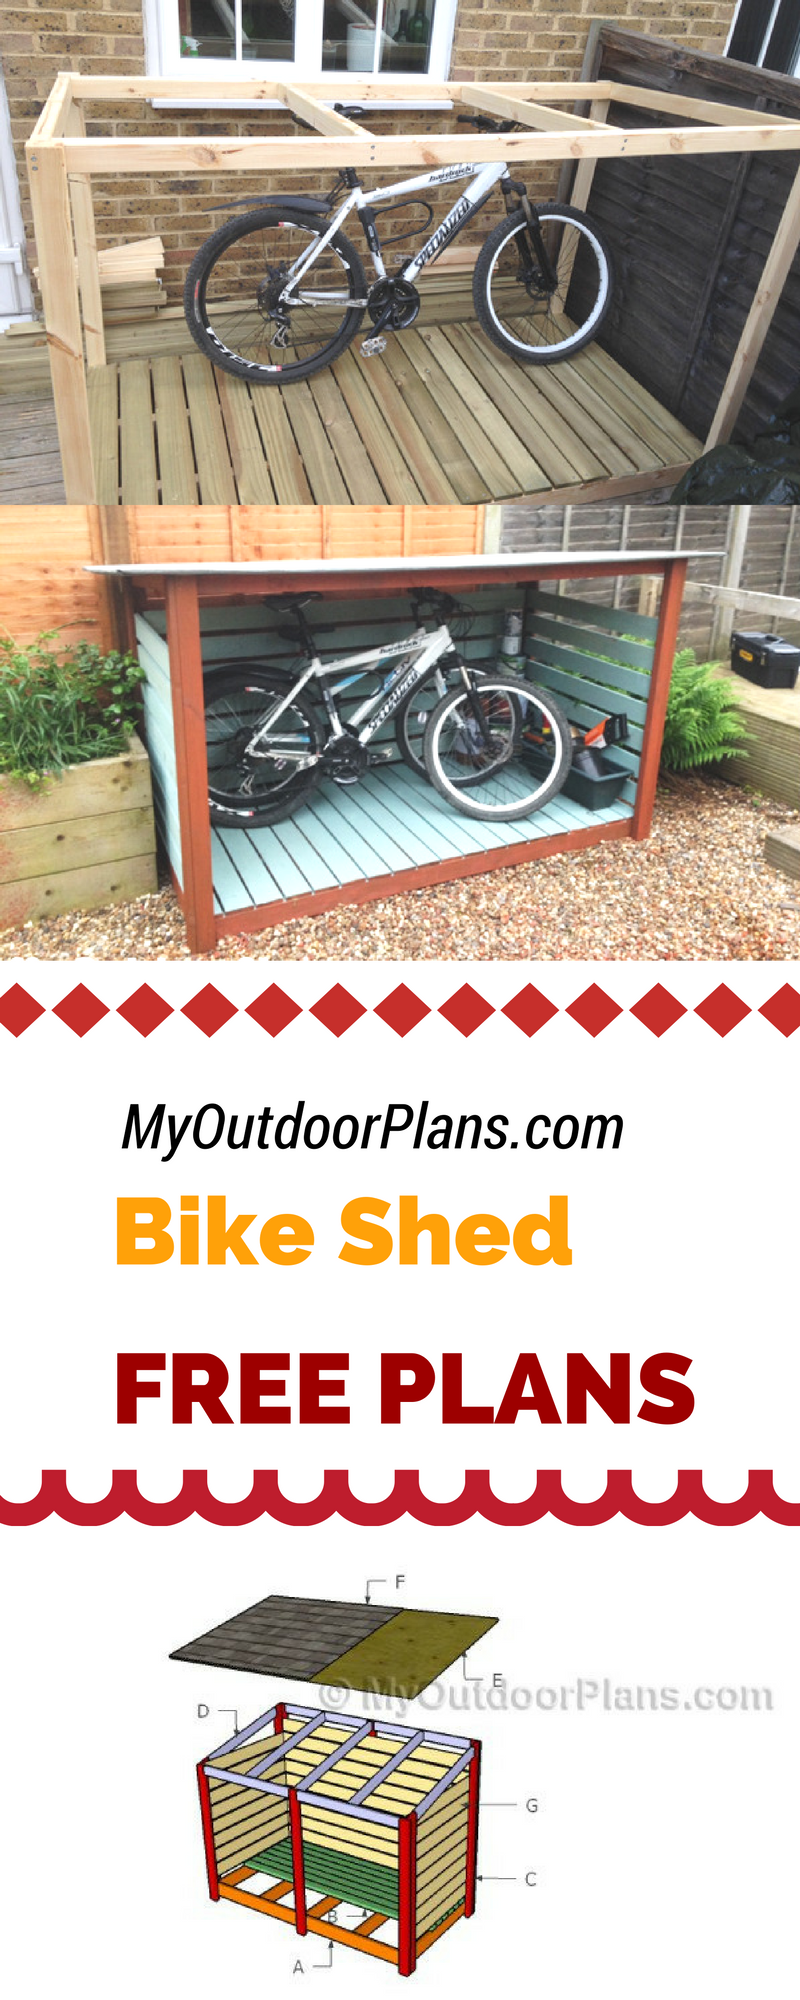 Learn how to build a bike shed using my free plans and instructions learn how to build a bike shed using my free plans and instructions a simple bike shed is a super easy and useful project so you can save money and add solutioingenieria Image collections